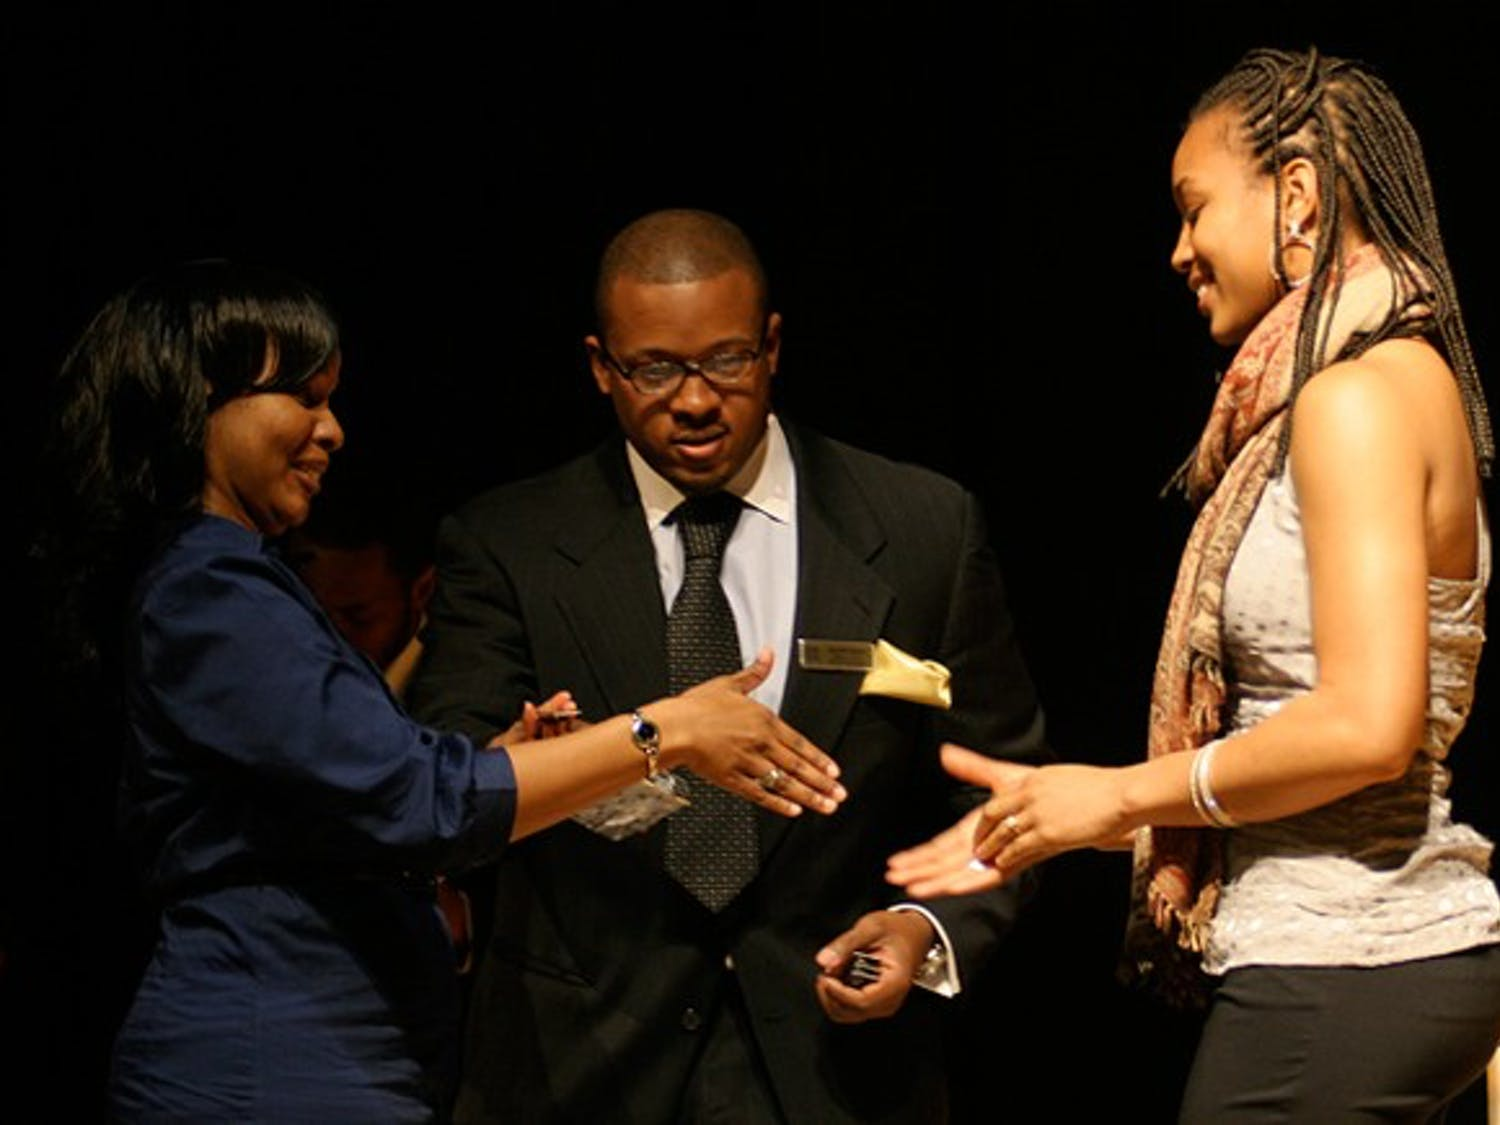 Junior Jessica Booker was one of 28 students inducted as a McNair scholar at the Stone Center on Thursday. dth/Daixi Xu